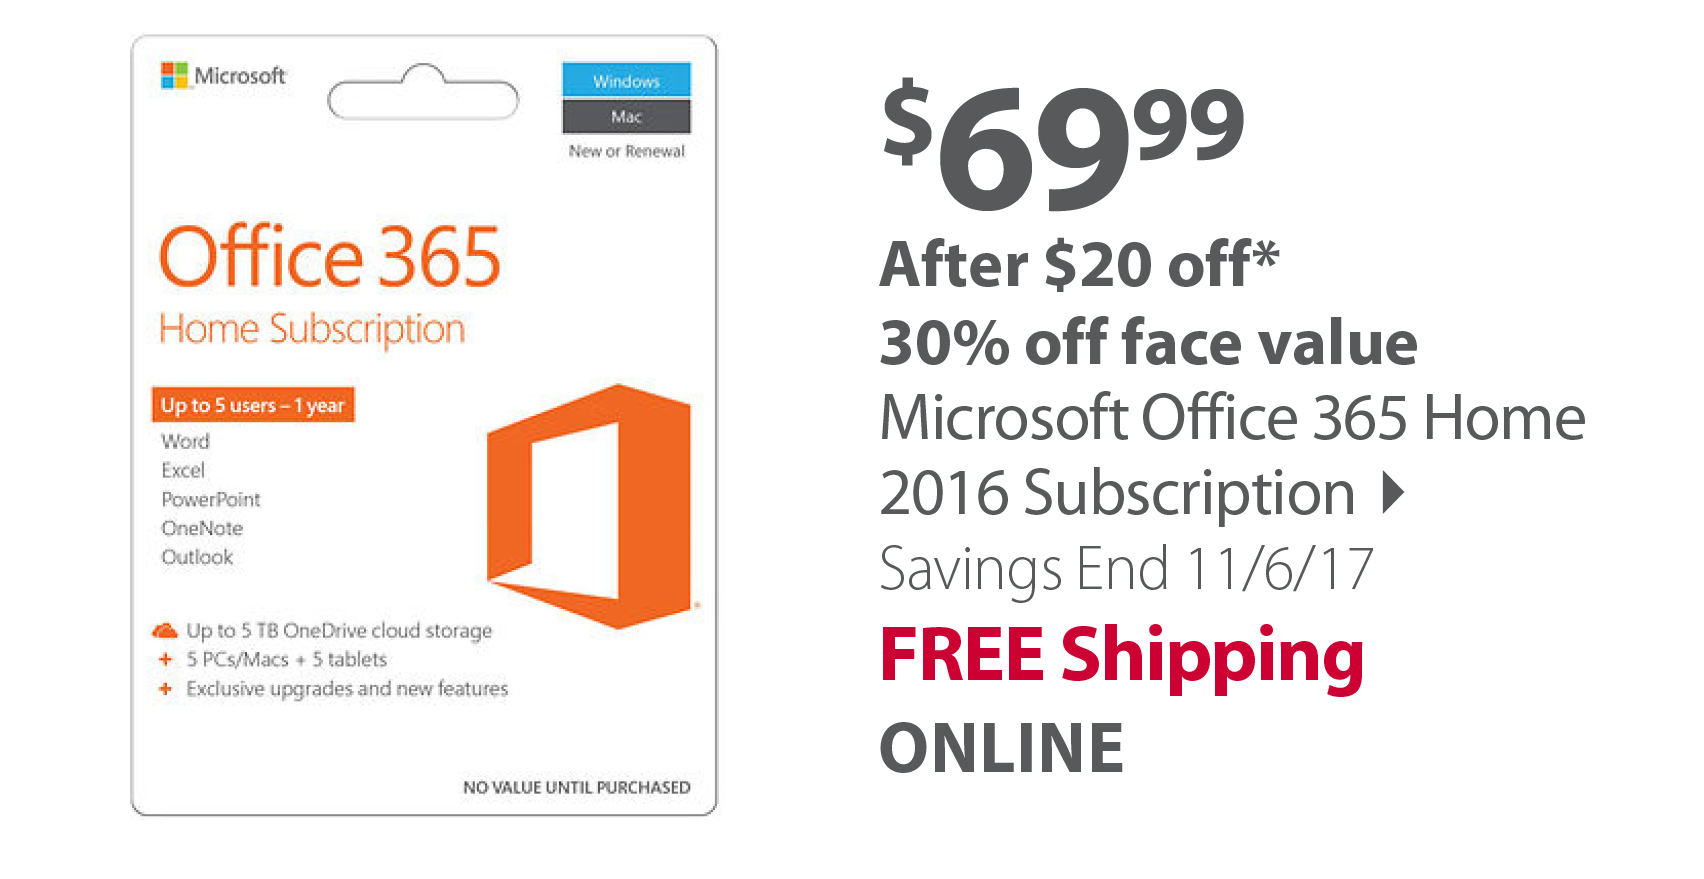 Microsoft Office 365 Home 2016 Subscription